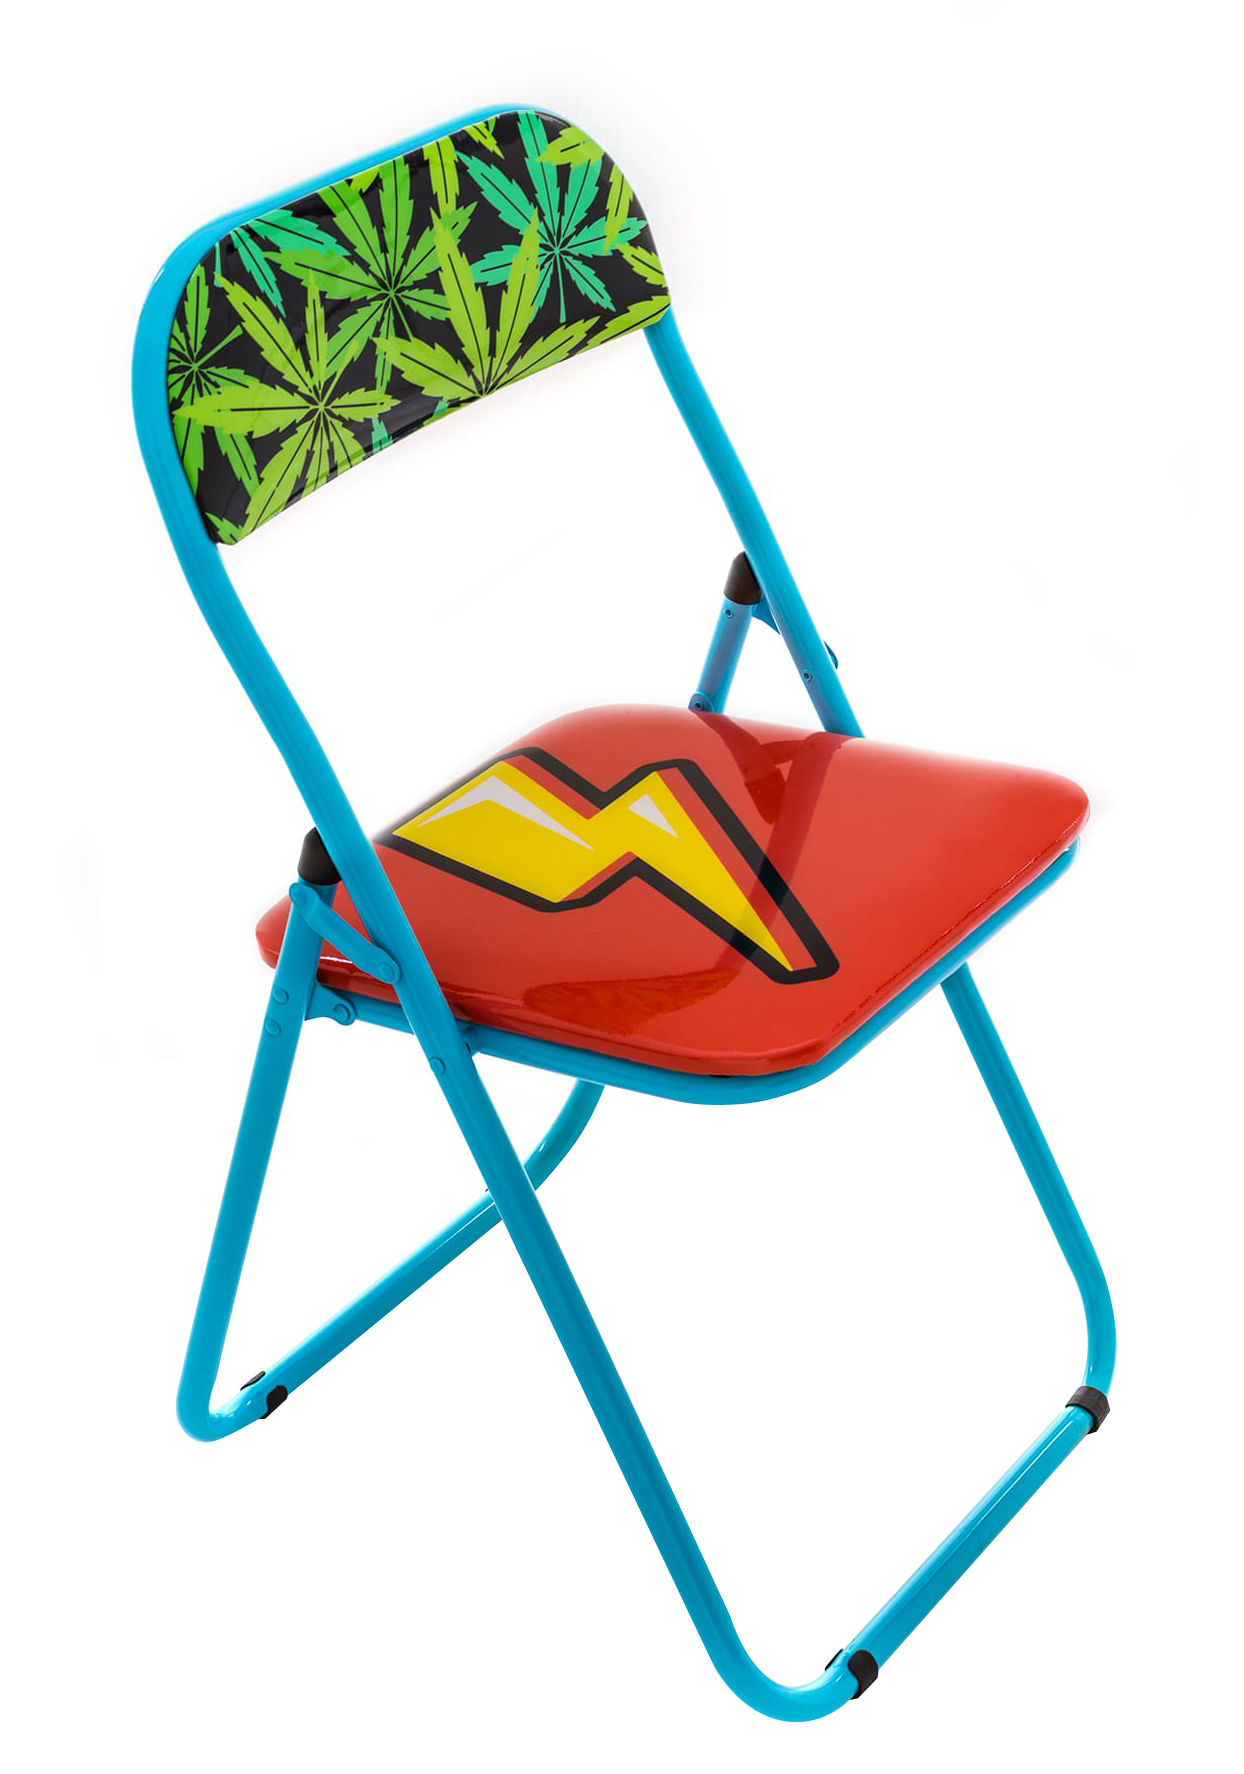 Furniture Chairs Eclair Folding Chair Padded By Seletti Lightning Foam